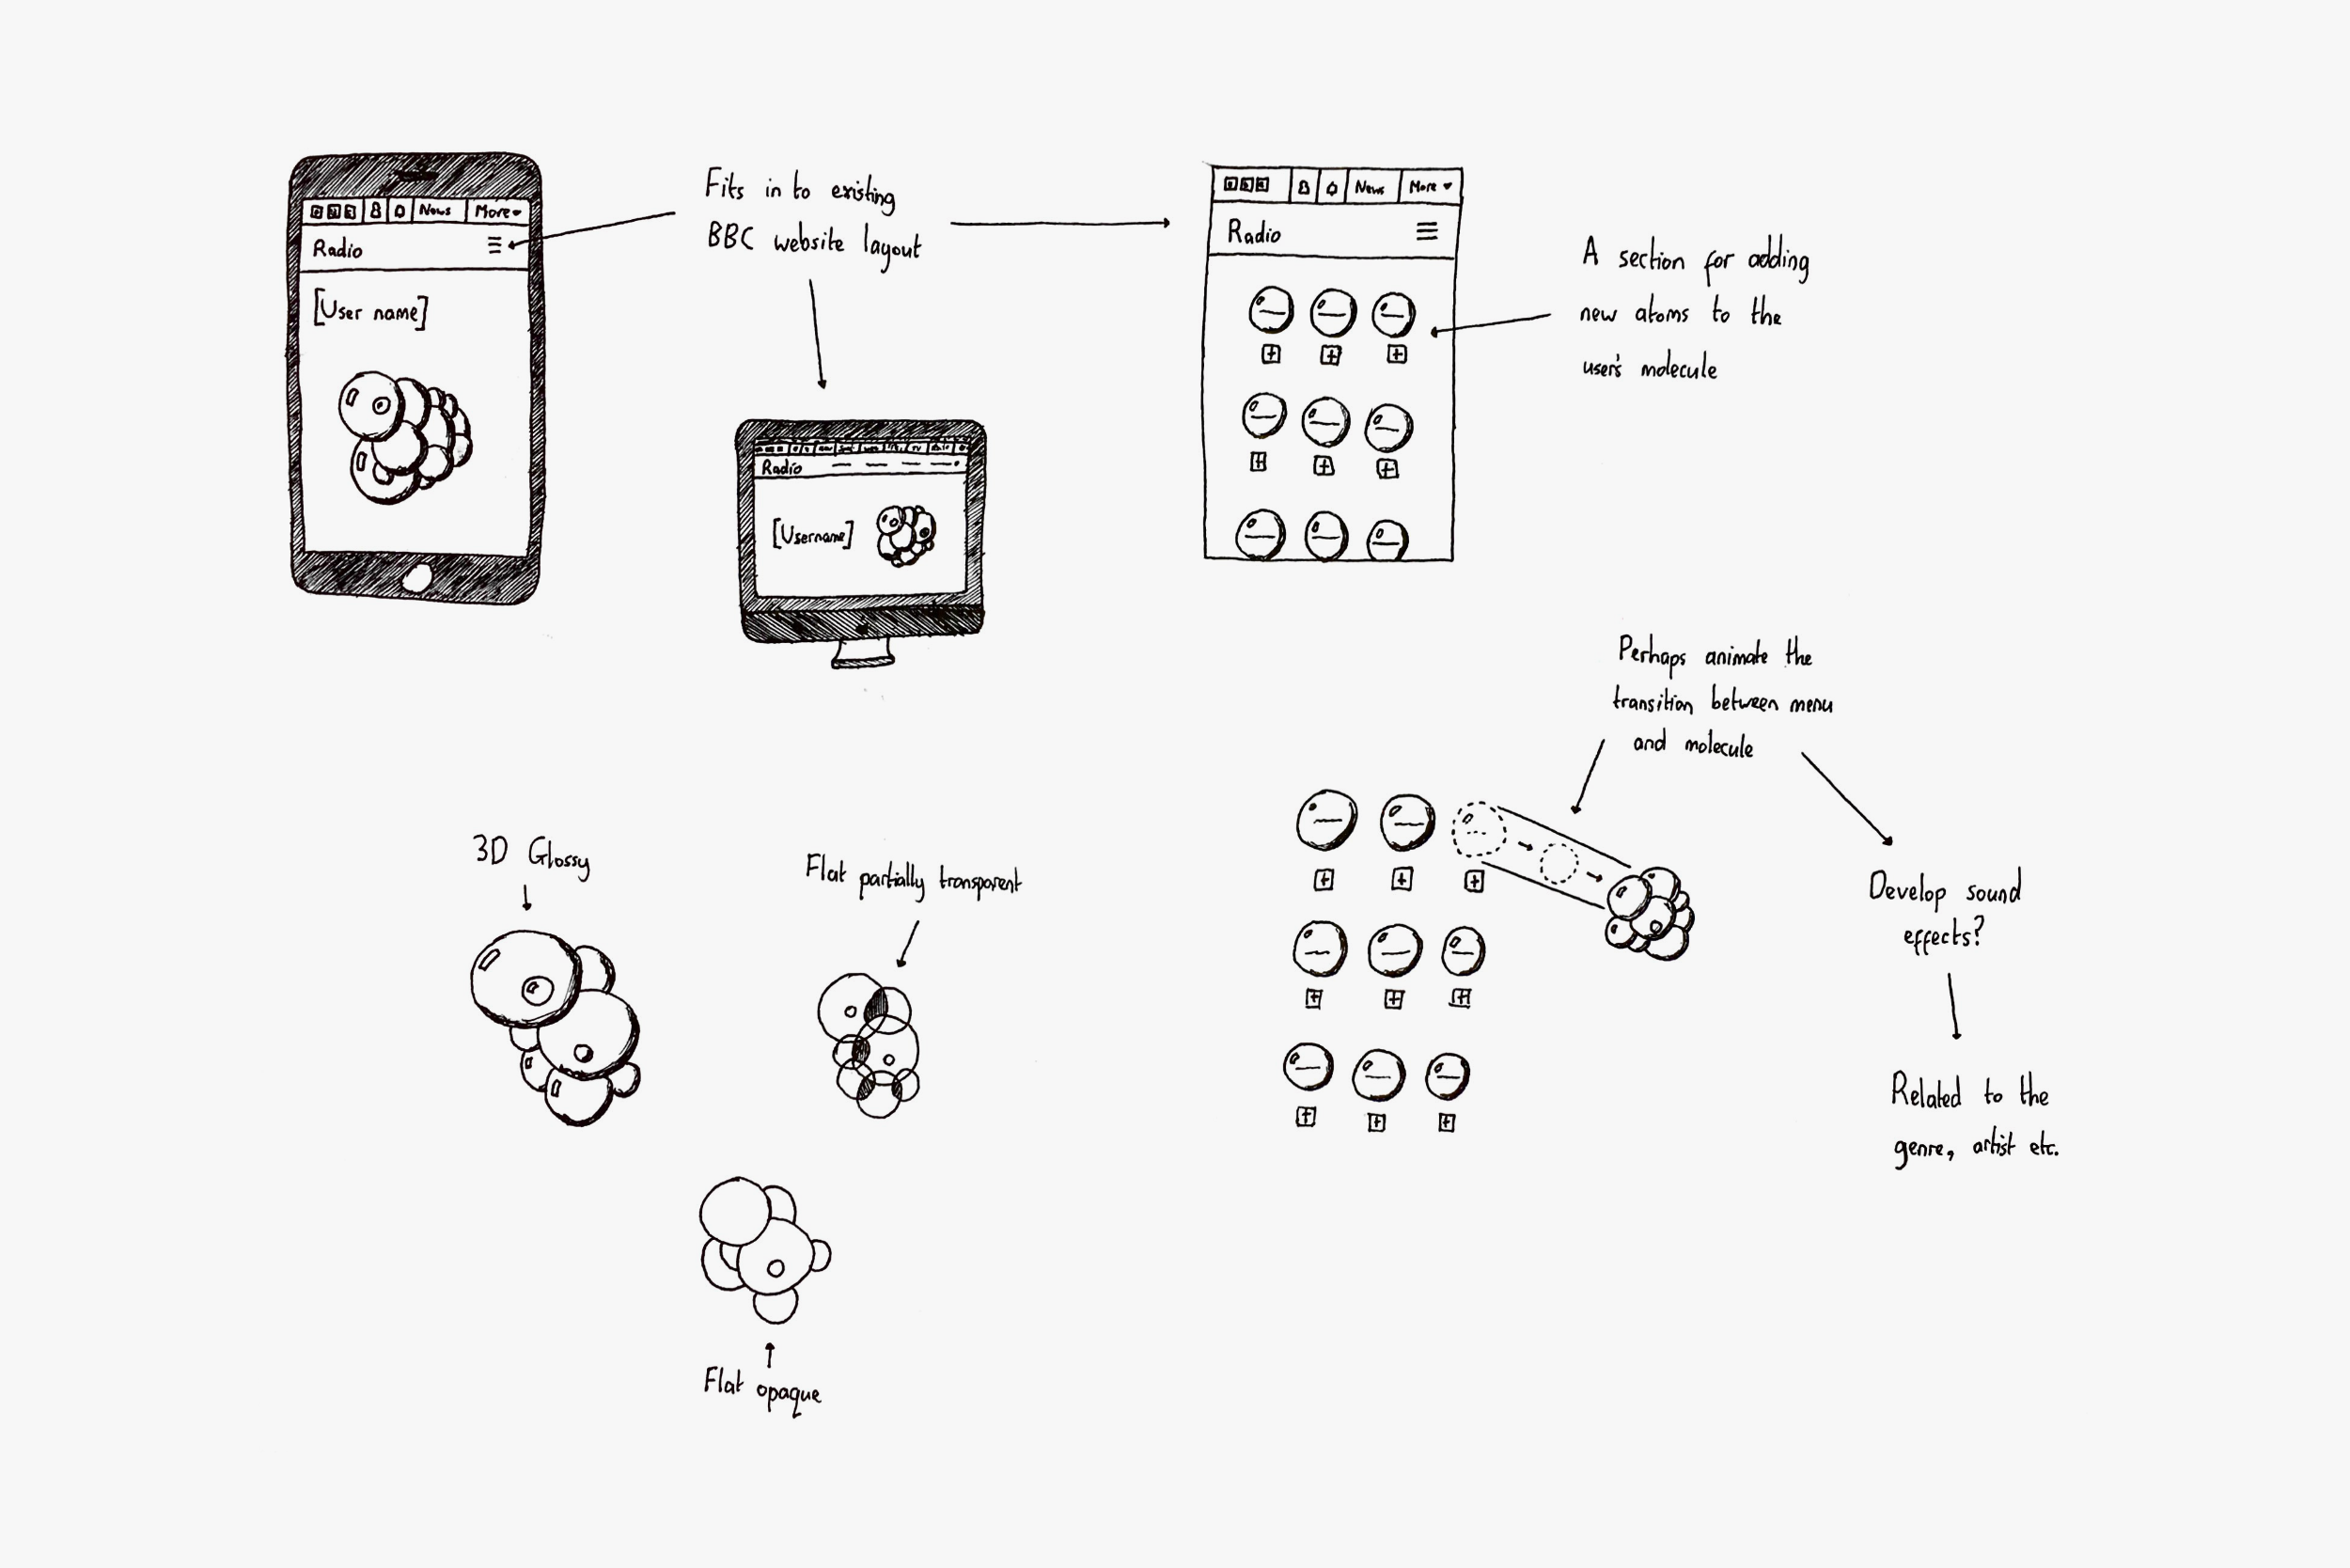 Interaction sketches